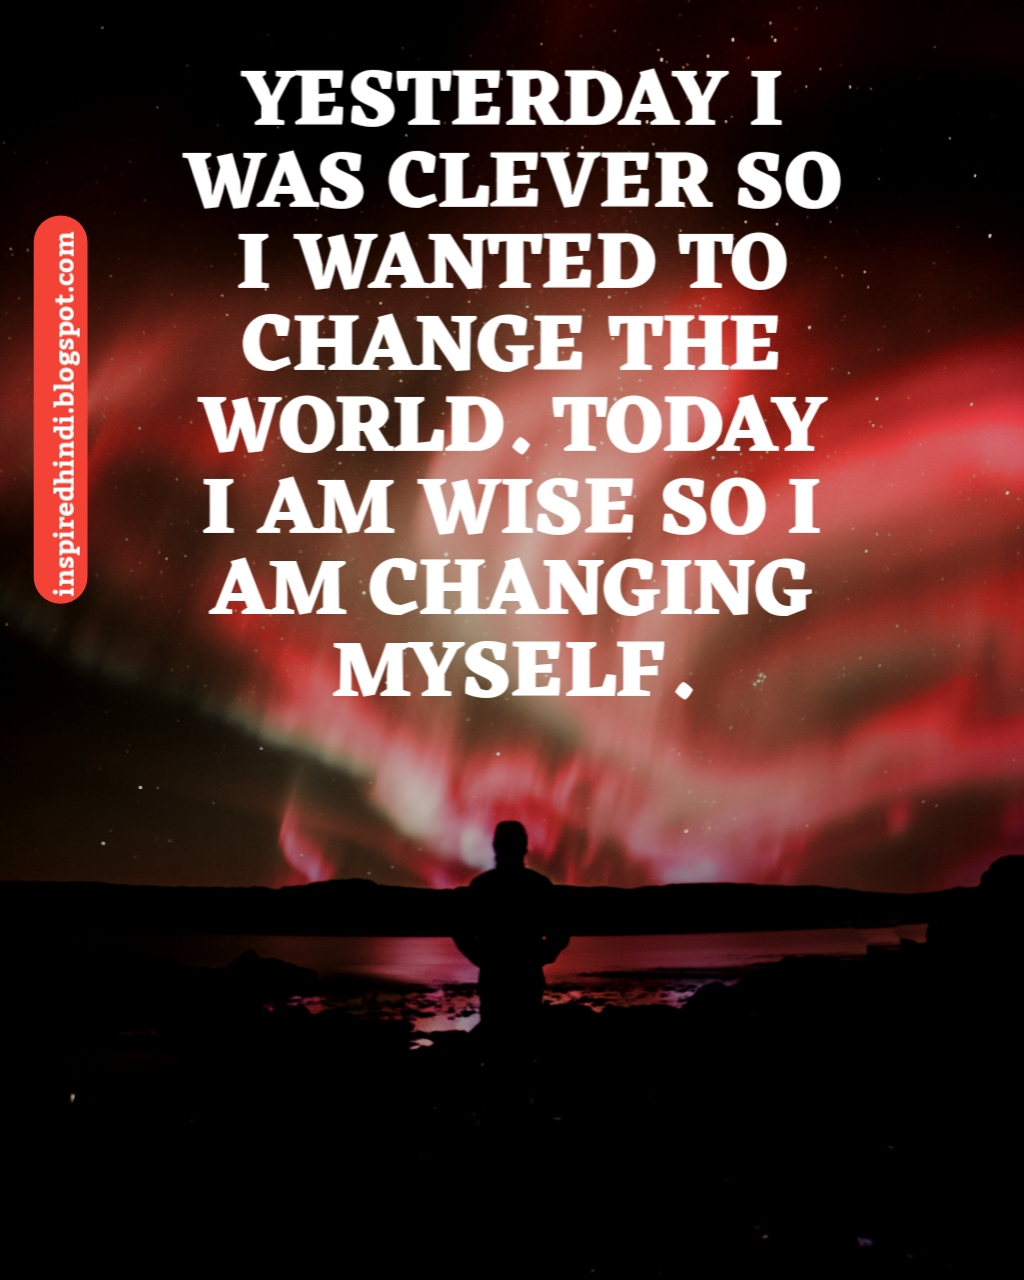 YESTERDAY I WAS CLEVER SO I WANTED TO CHANGE THE WORLD, TODAY I AM WISE SO I AM CHANGING MY SELF.